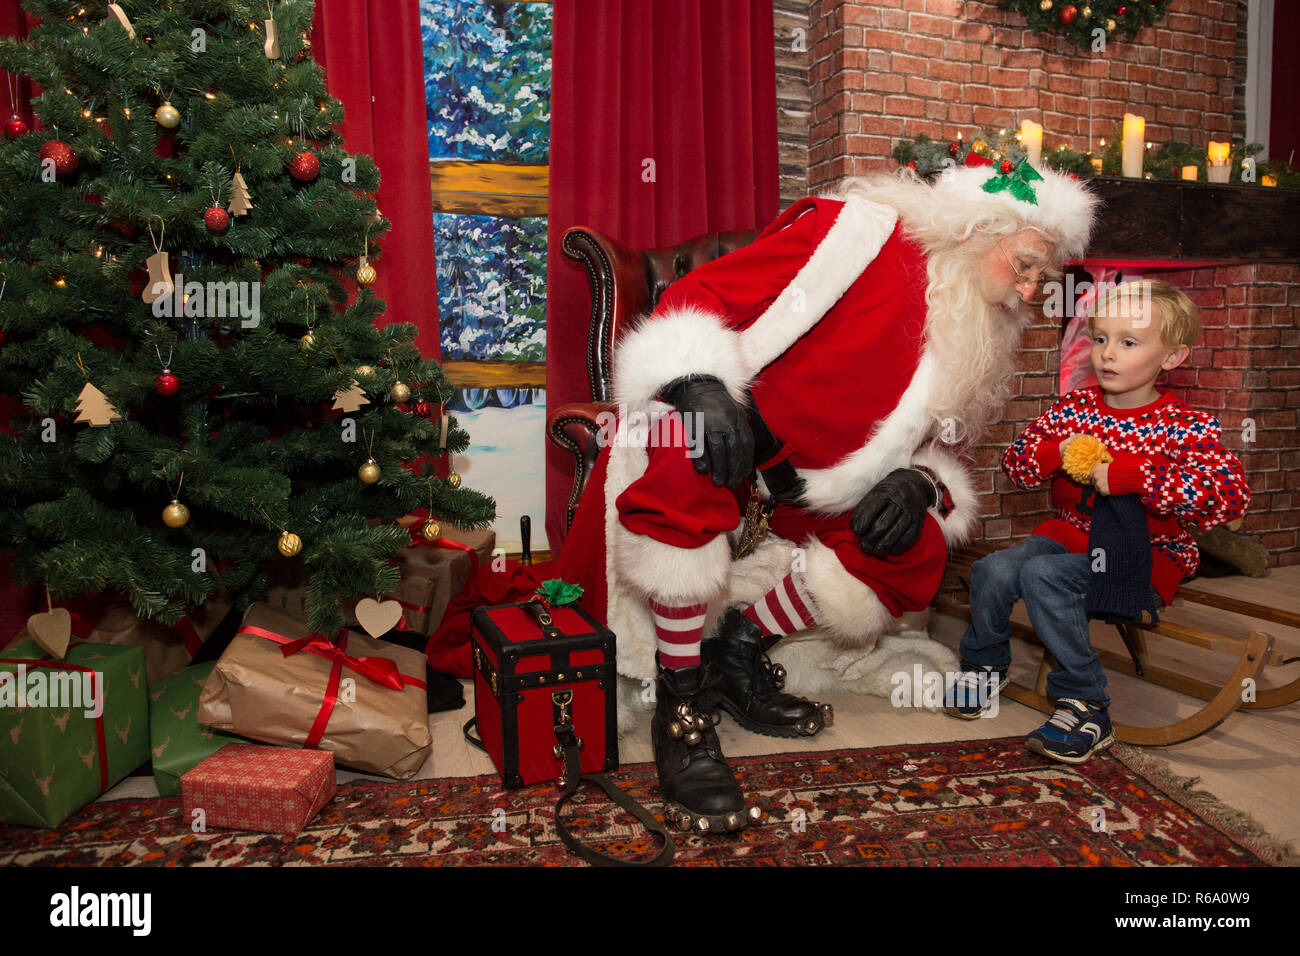 Father Christmas at his Christmas Grotto in southwest London, United Kingdom - Stock Image